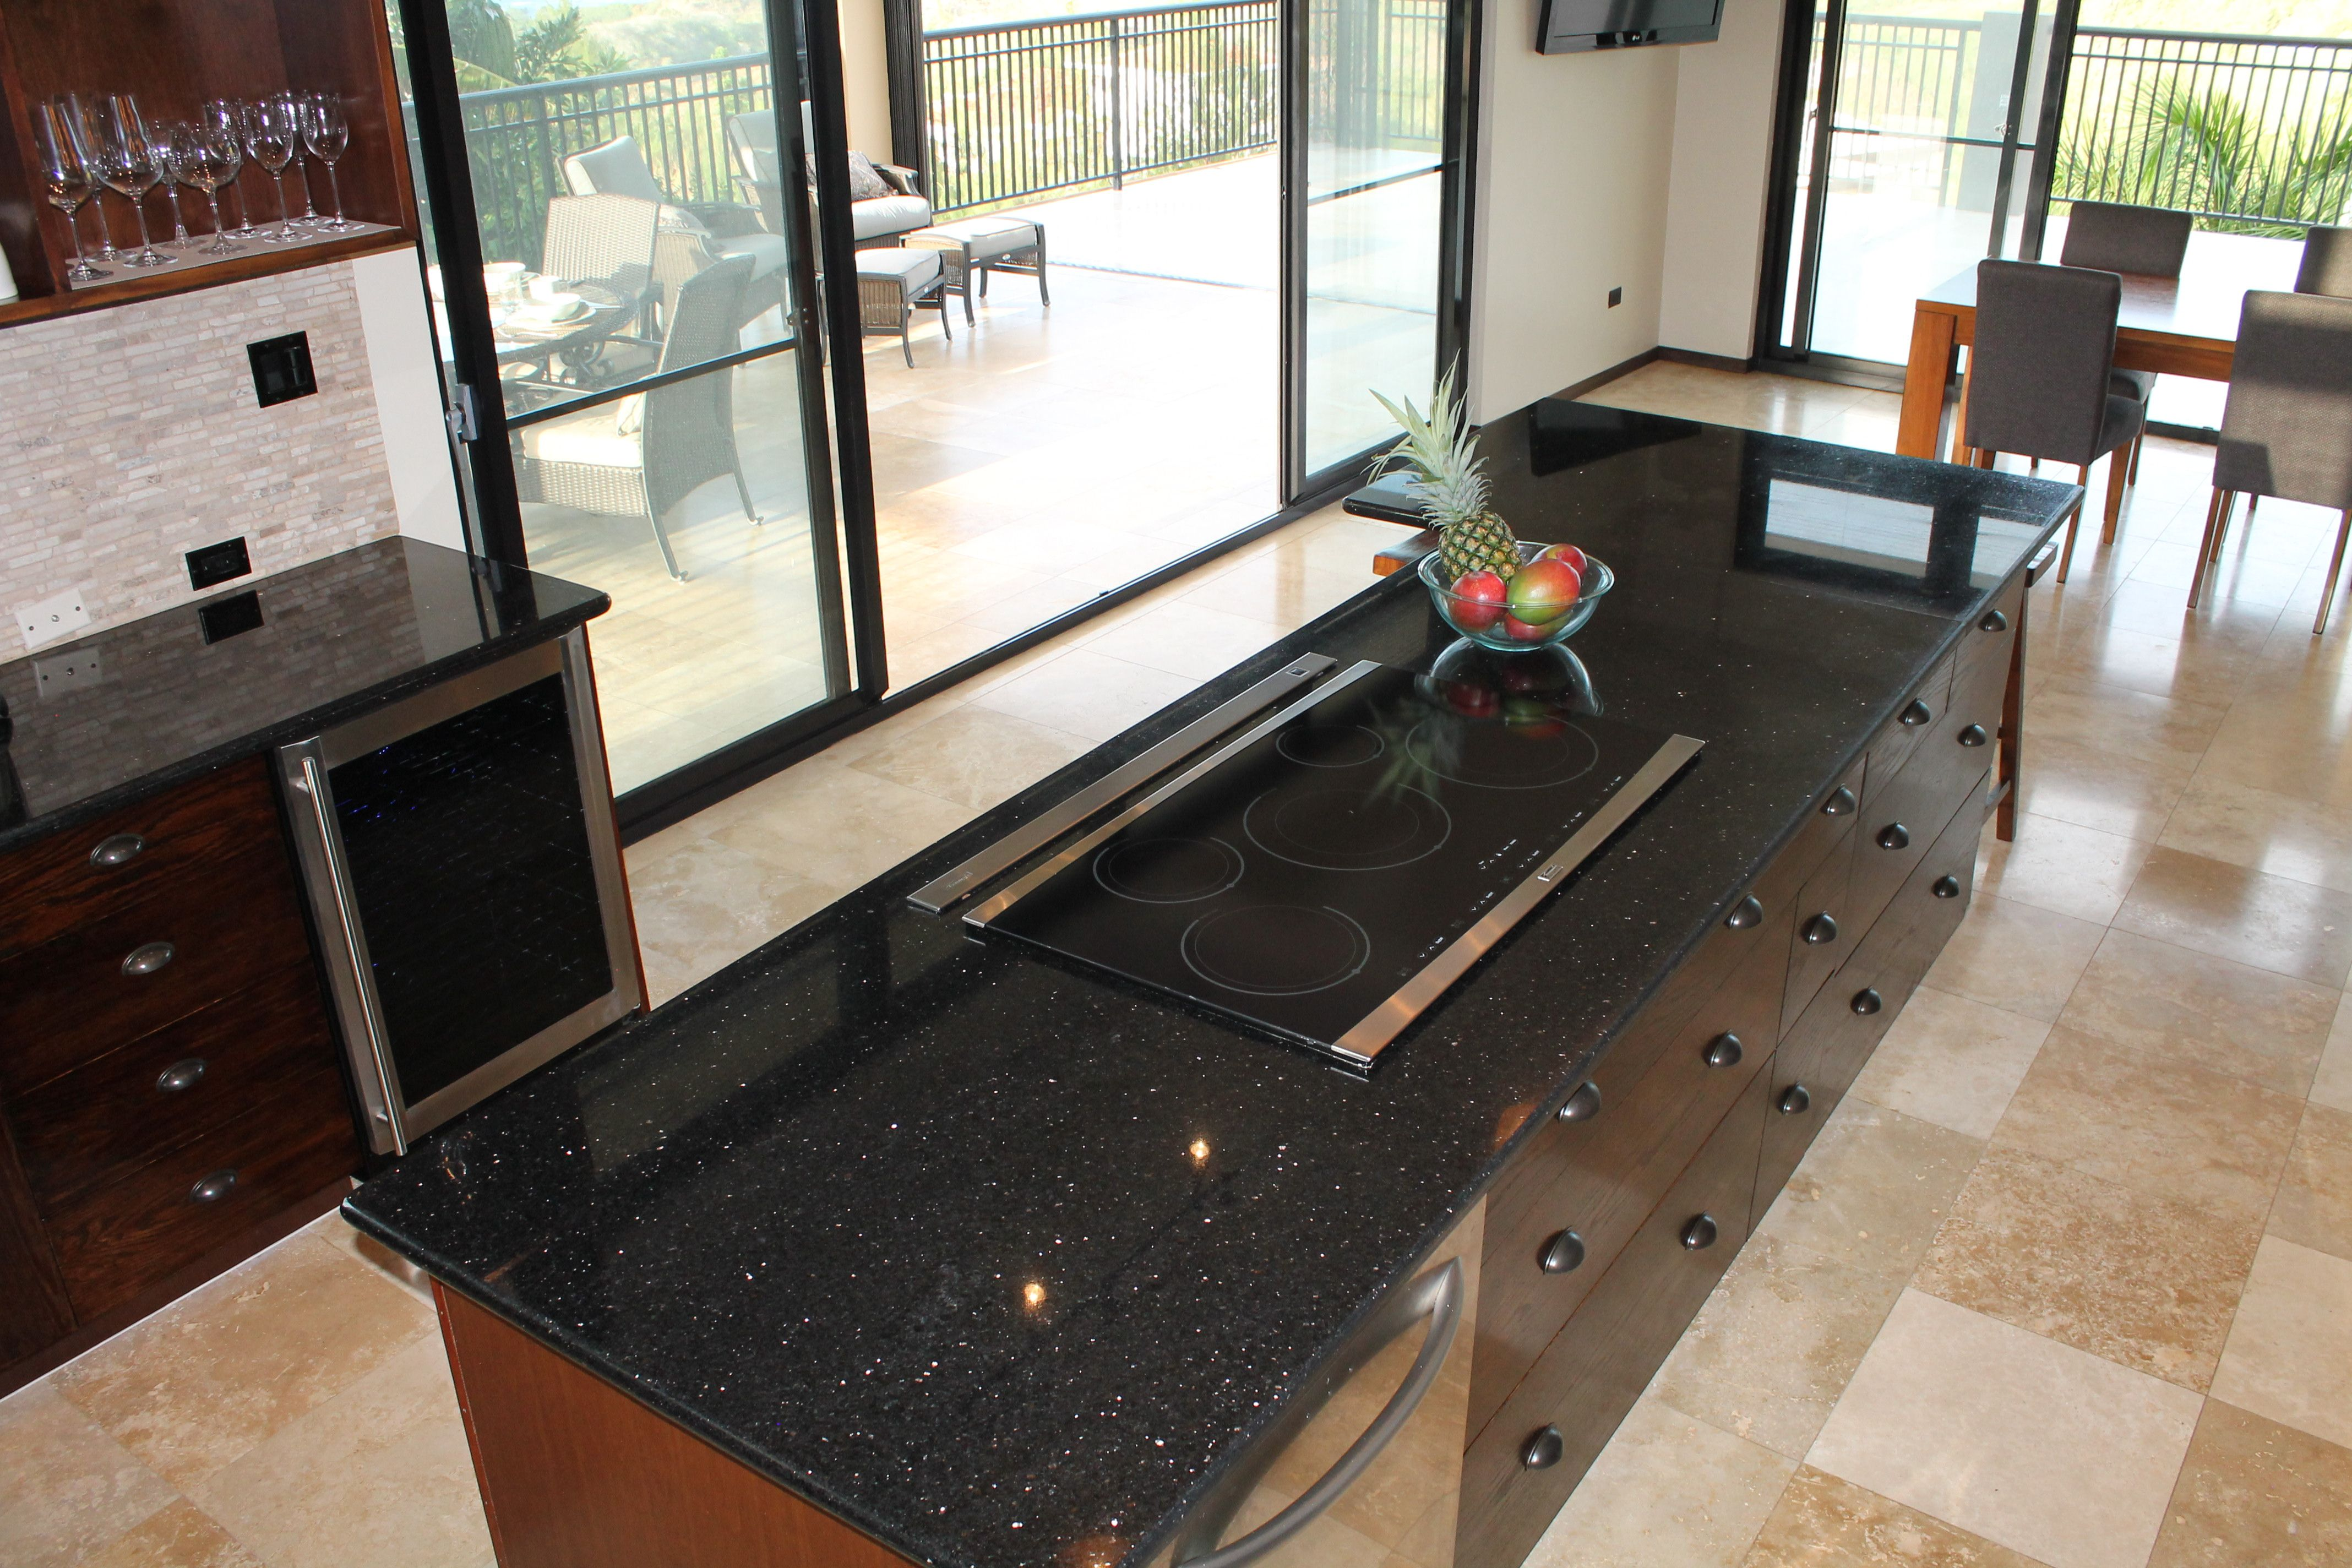 the island features a 36 inch induction cooktop and a telescoping